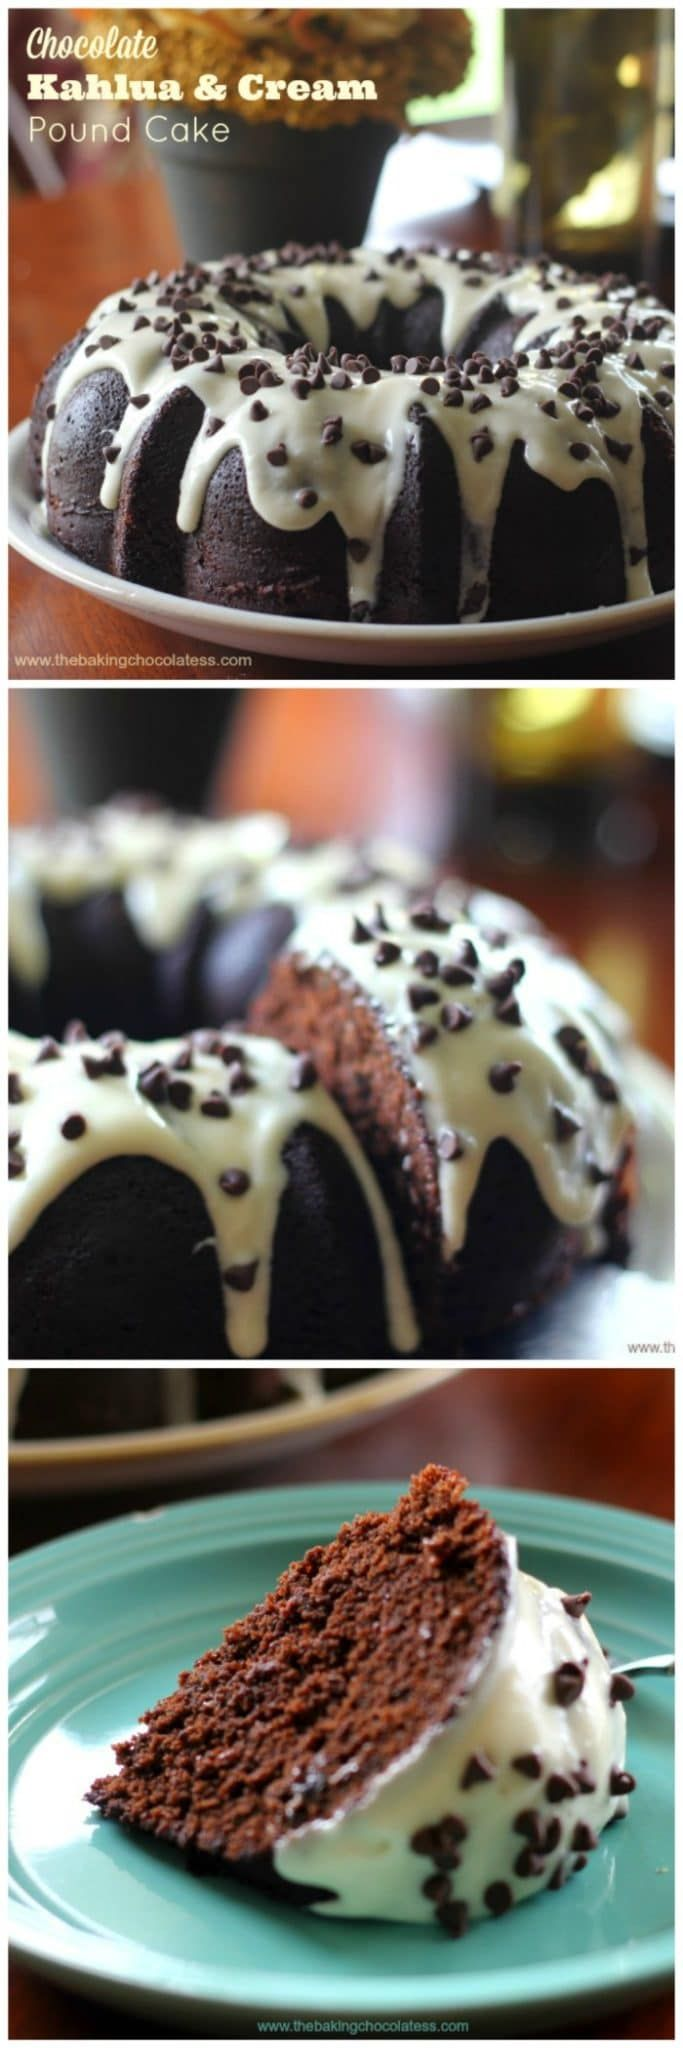 Home-made Chocolate Kahlua & Cream Bundt Cake via @https://www.pinterest.com/BaknChocolaTess/